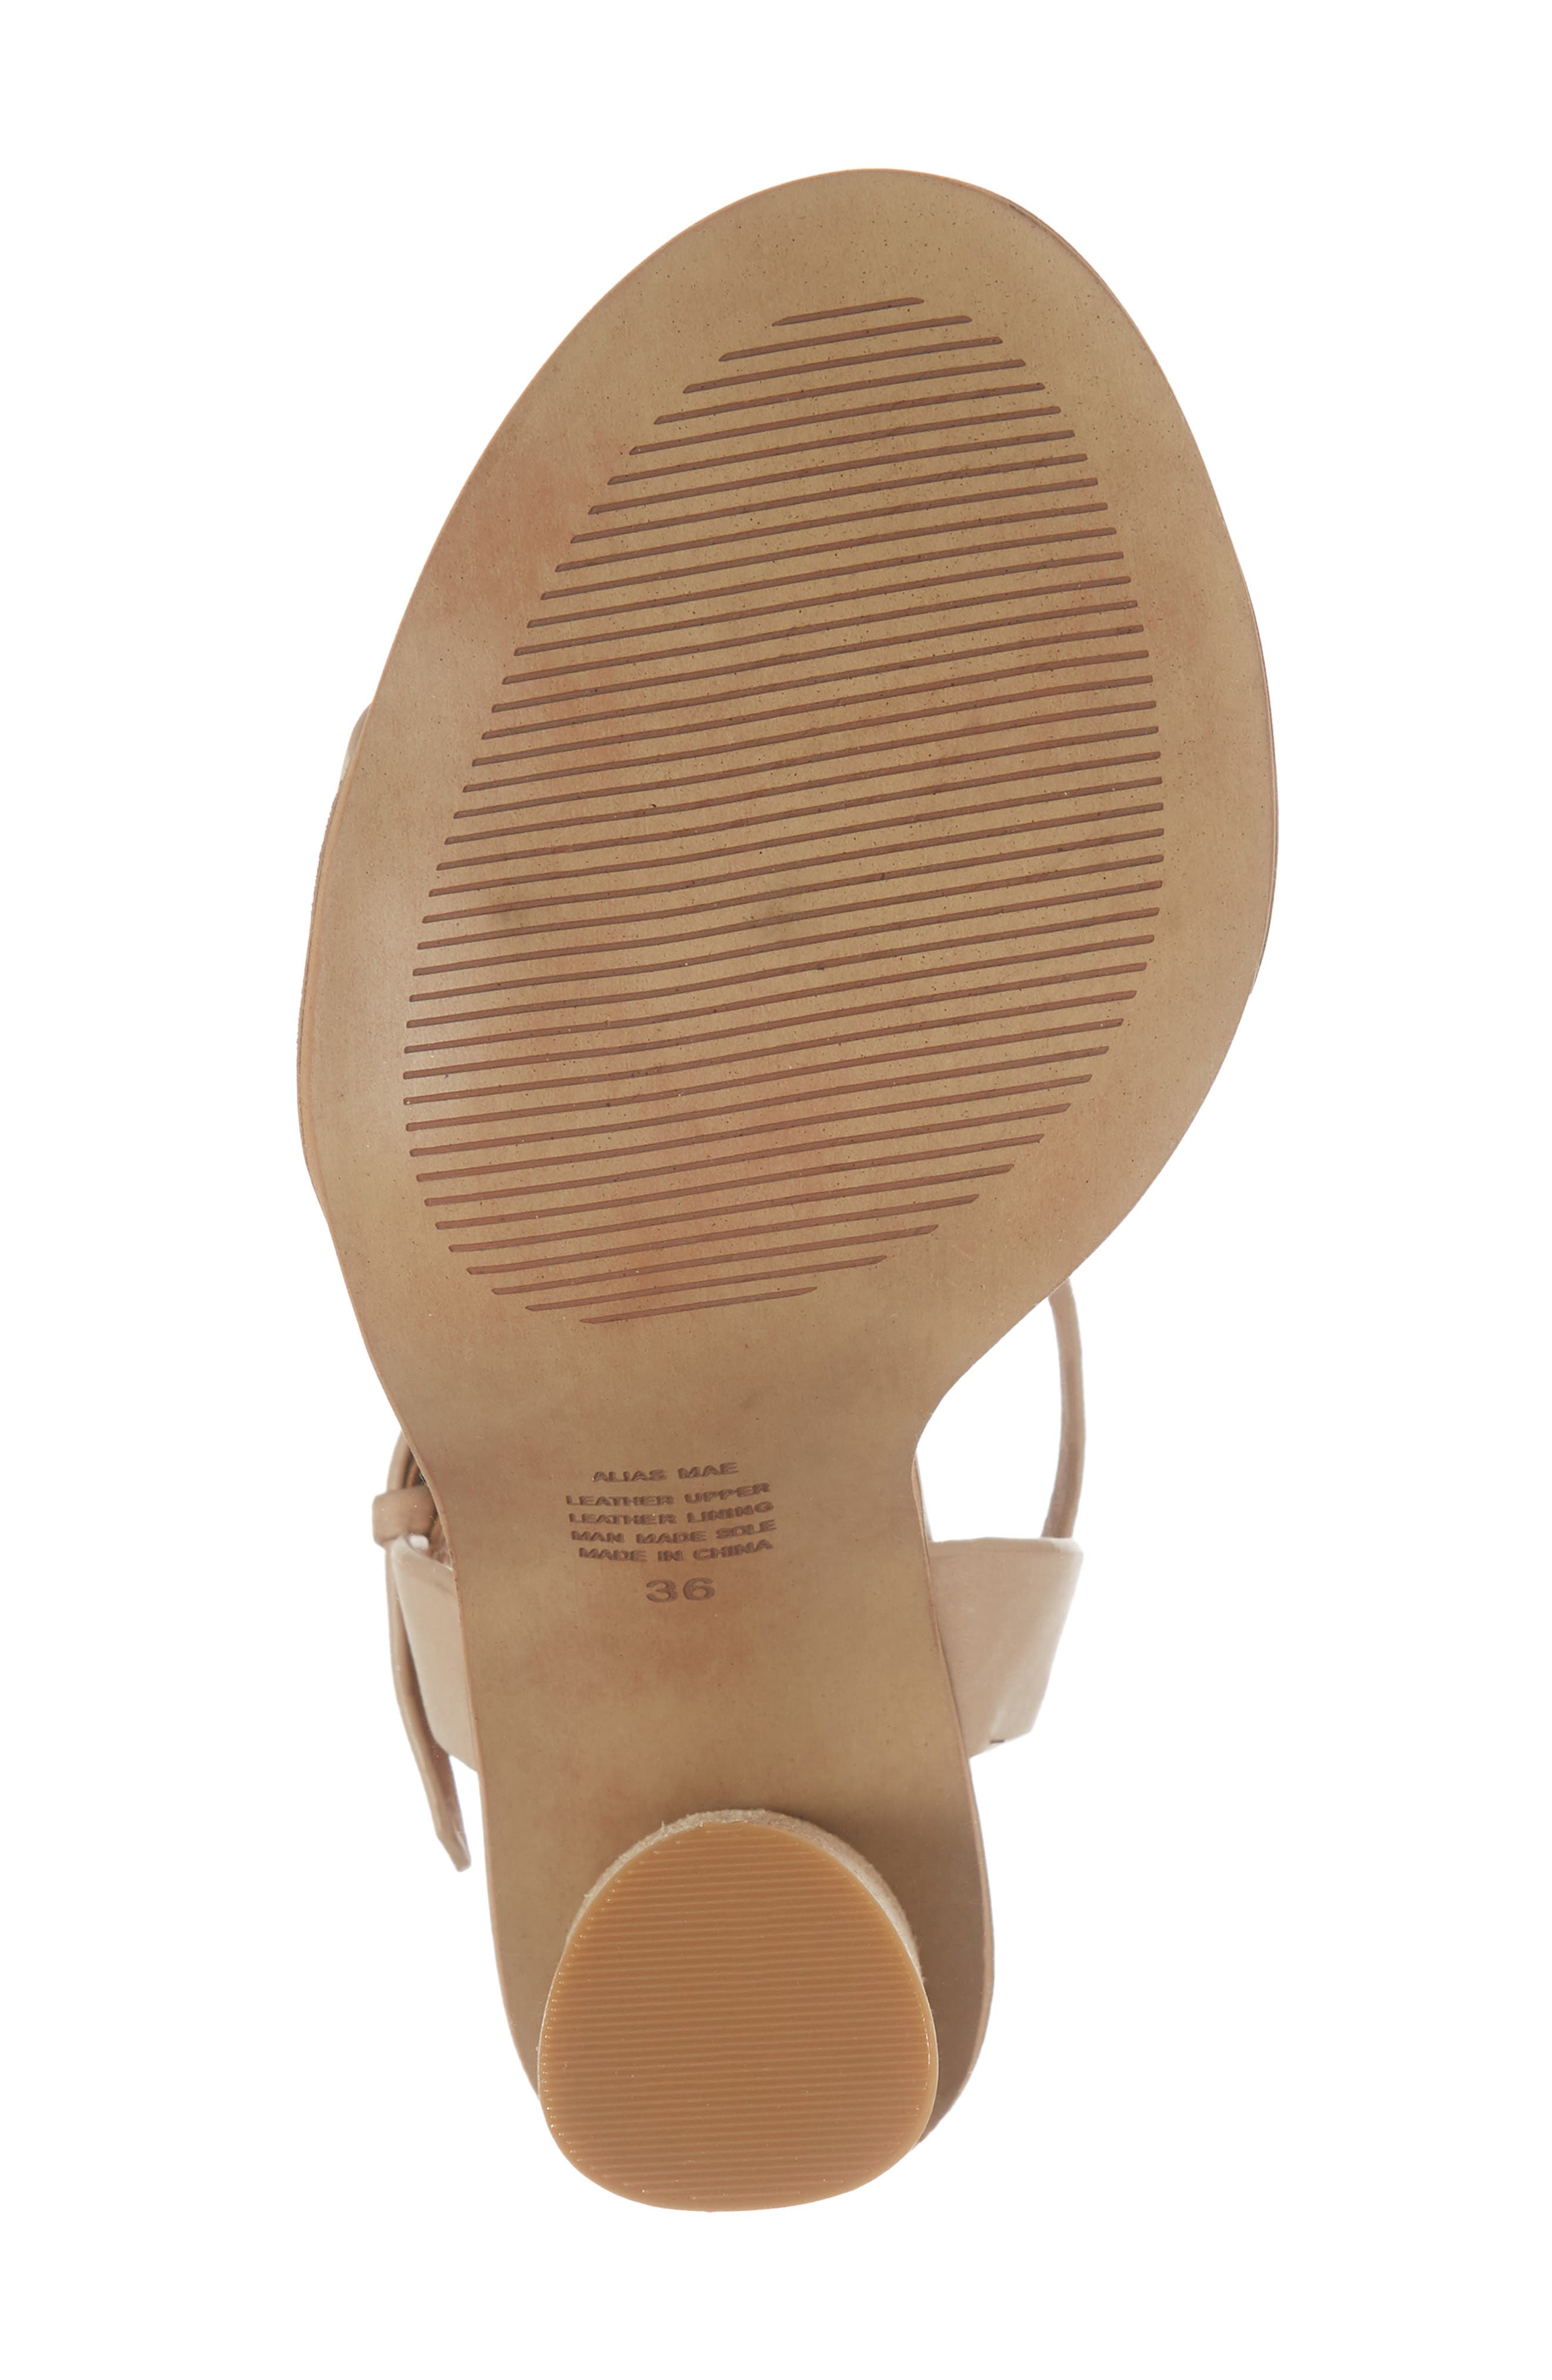 Abagail Sandal,                             Alternate thumbnail 6, color,                             NATURAL LEATHER